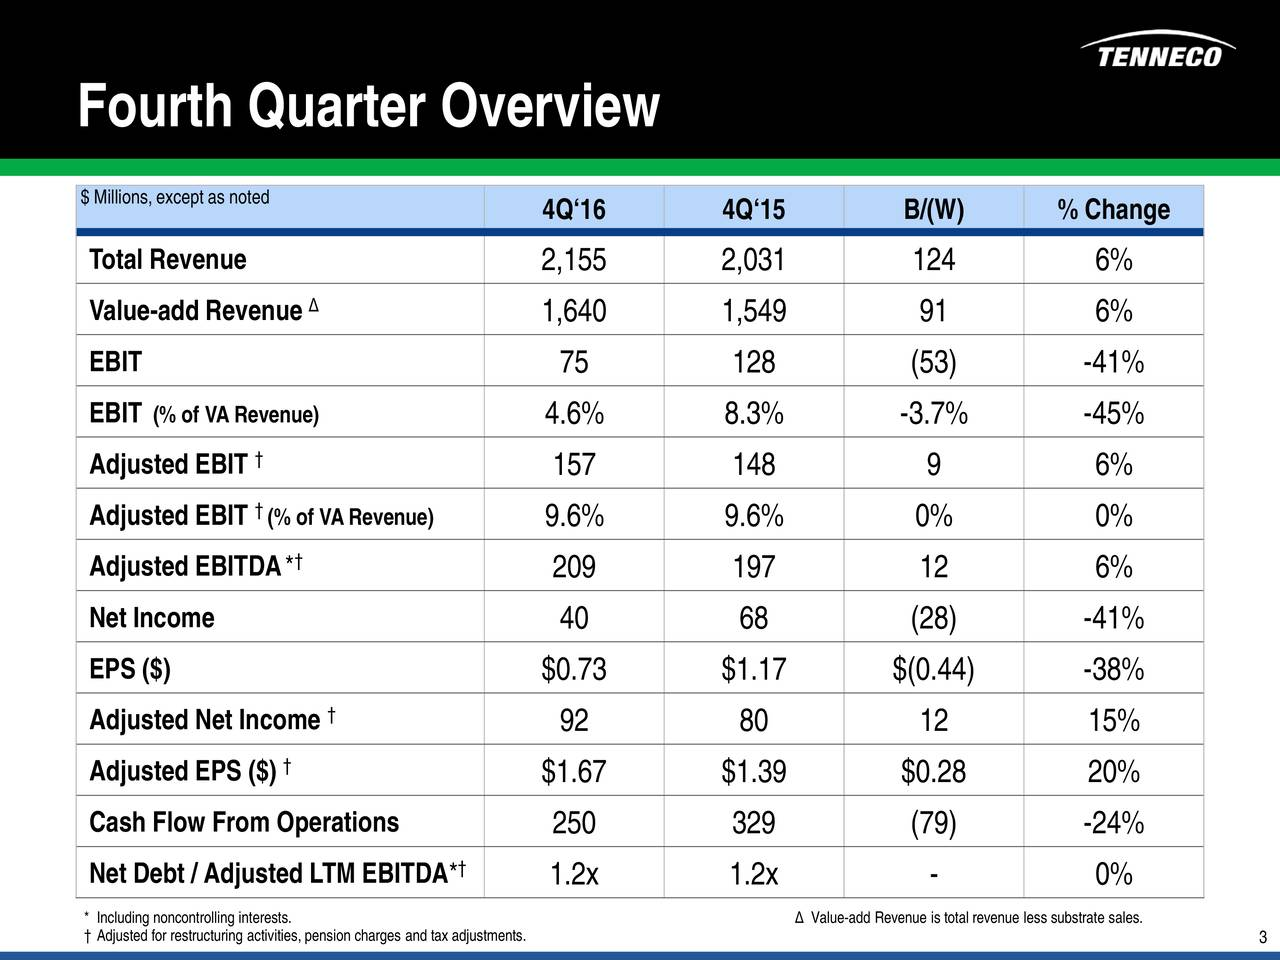 $ Millions, except as noted 4Q16 4Q15 B/(W) % Change Total Revenue 2,155 2,031 124 6% Value-add Revenue 1,640 1,549 91 6% EBIT 75 128 (53) -41% EBIT (% of VA Revenue) 4.6% 8.3% -3.7% -45% Adjusted EBIT 157 148 9 6% Adjusted EBIT(% of VA Revenue) 9.6% 9.6% 0% 0% Adjusted EBITDA* 209 197 12 6% Net Income 40 68 (28) -41% EPS ($) $0.73 $1.17 $(0.44) -38% Adjusted Net Income 92 80 12 15% Adjusted EPS ($) $1.67 $1.39 $0.28 20% Cash Flow From Operations 250 329 (79) -24% Net Debt / Adjusted LTM EBITDA* 1.2x 1.2x - 0% Adjusted for restructuring activities, pension charges andtax adjustments.is totalrevenue 3ess substrate sales.